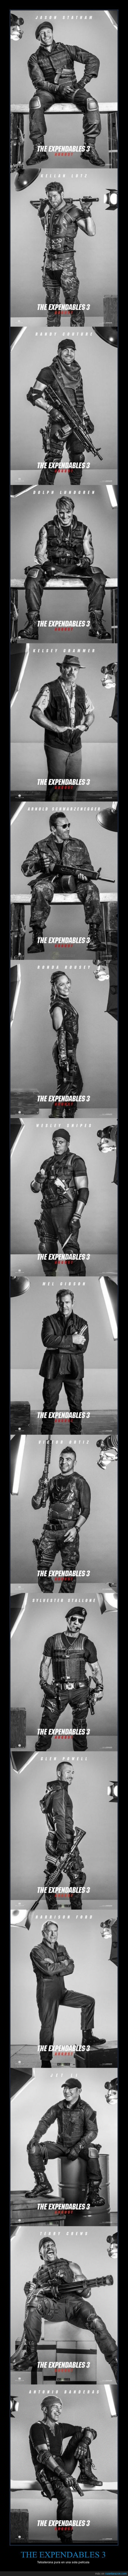 antonio banderas,jason statham,kellan,los indestructibles 3,los mercenarios 4,película,stallone,terry crews,the expendables 3